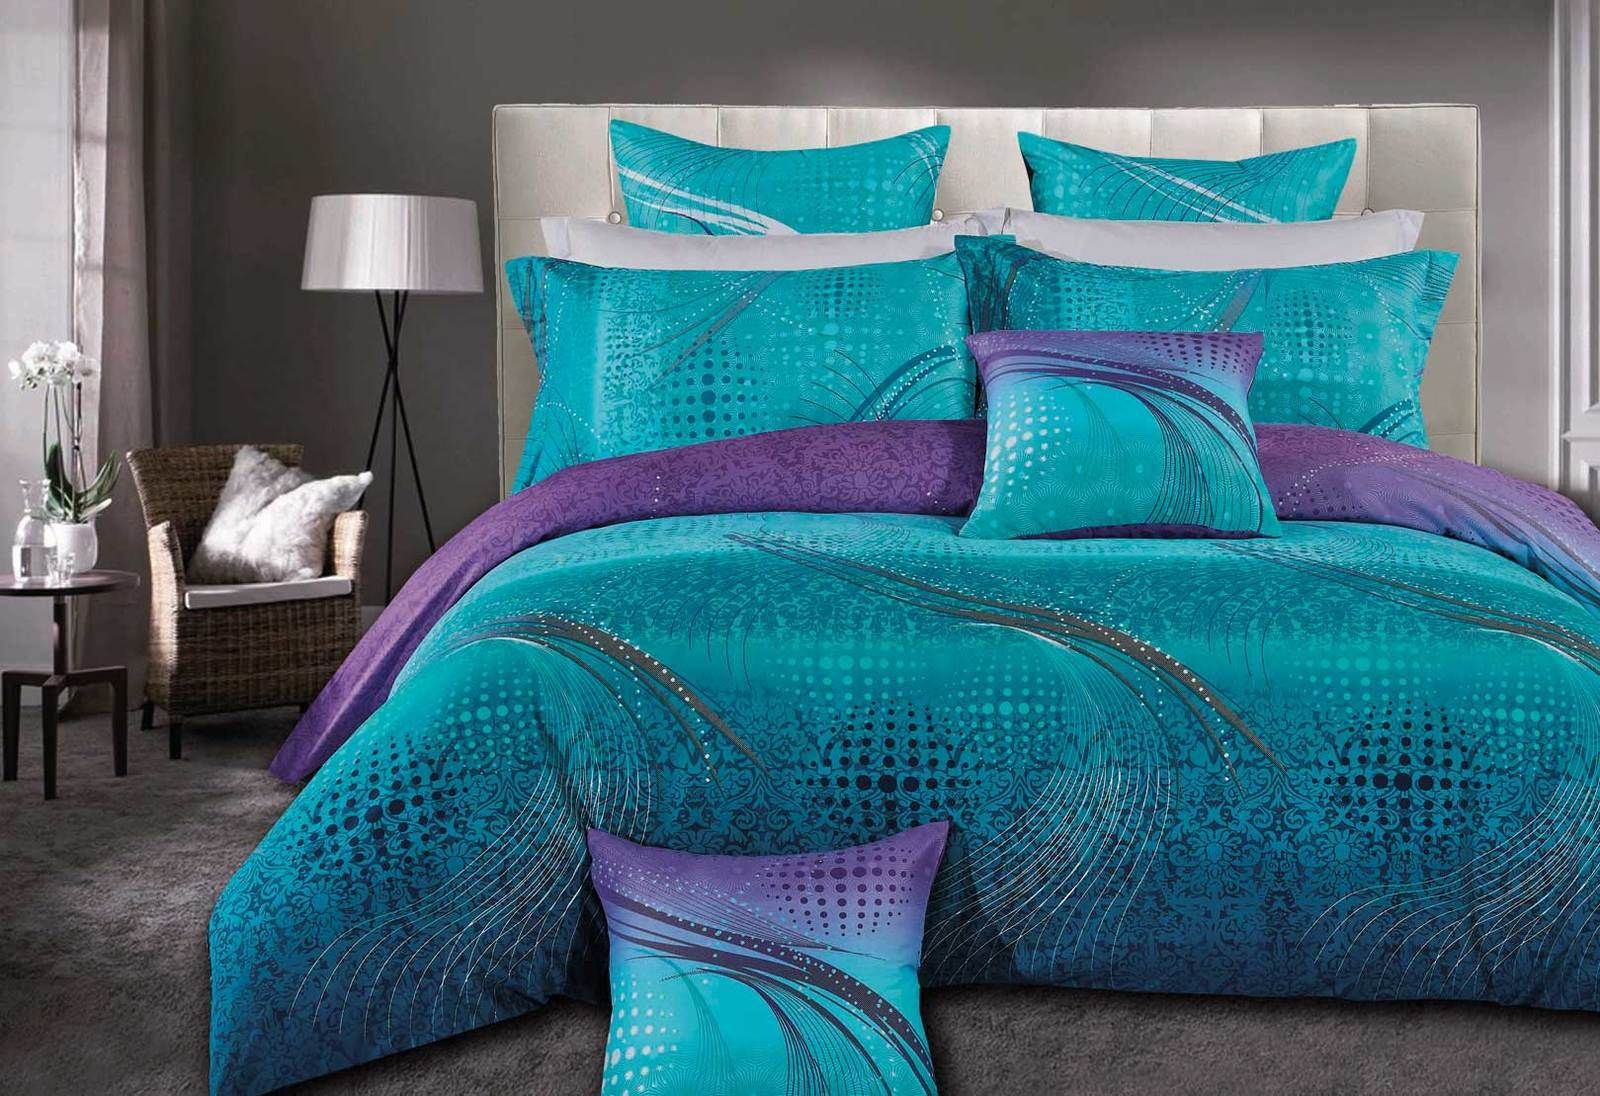 Queen Size Turquoise Aqua And Purple Quilt Cover Set 3pcs With